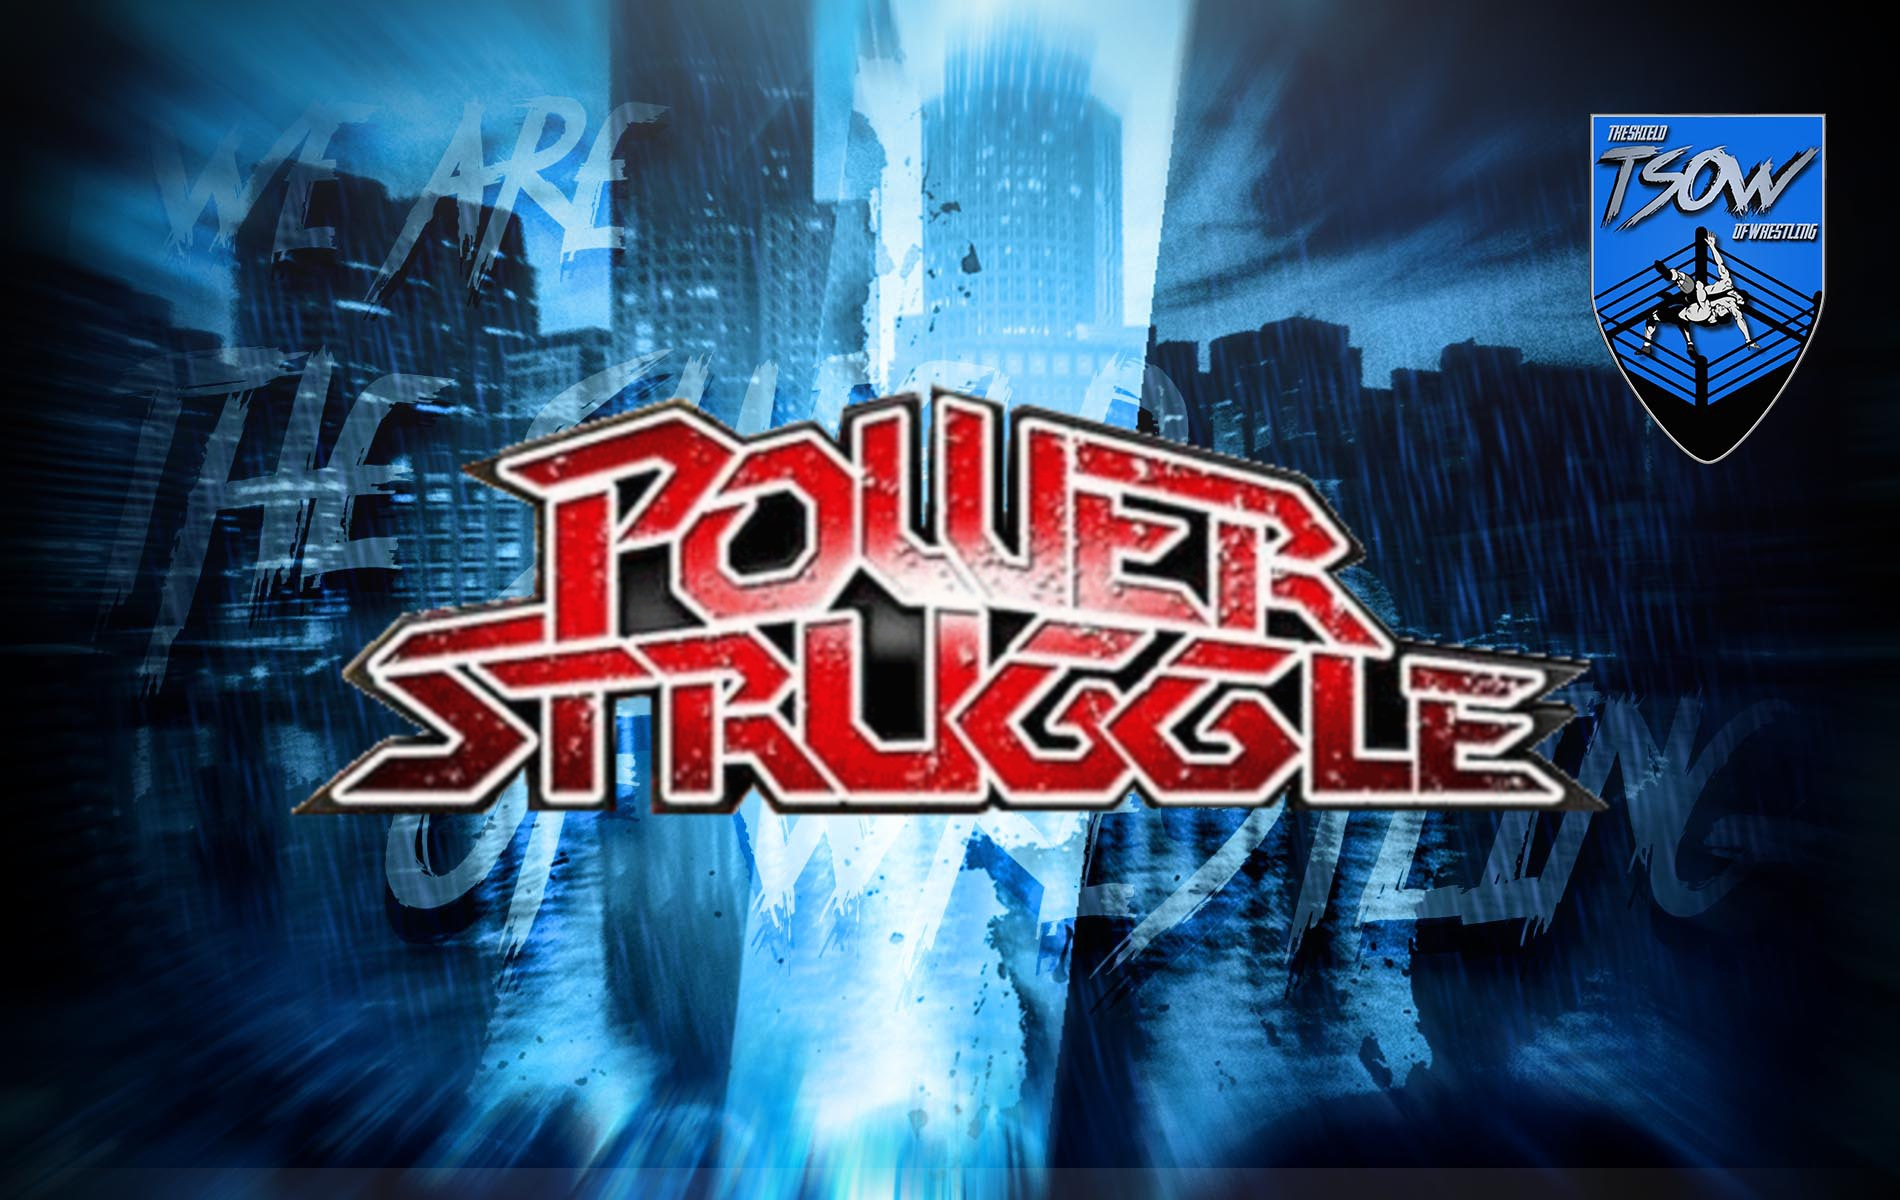 Risultati NJPW Road To Power Struggle 2020 - Day 1